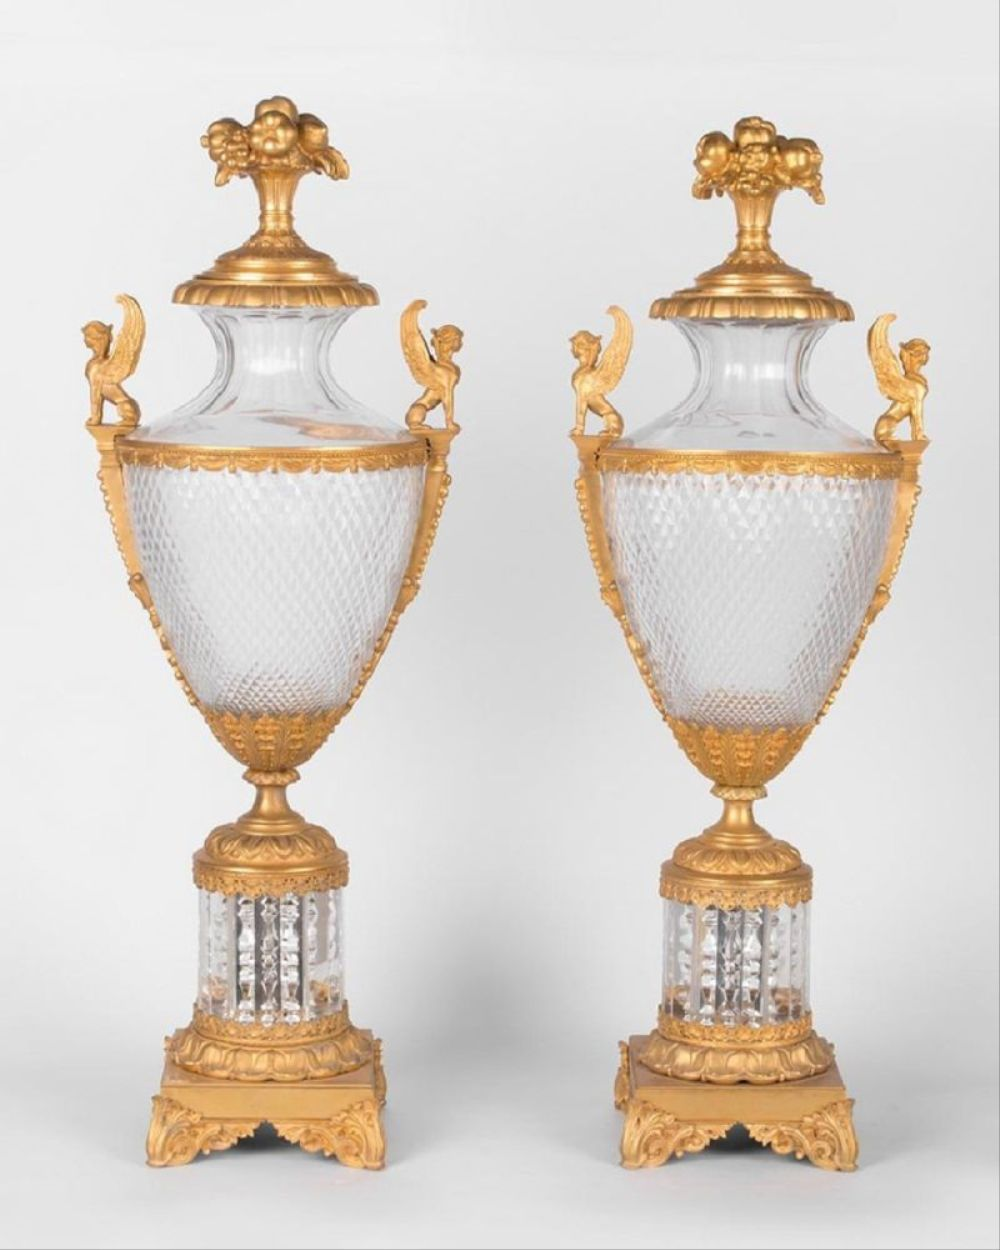 Pair Of 19Th C. Louis Xvi Style Gilt Bronze & Cut Glass